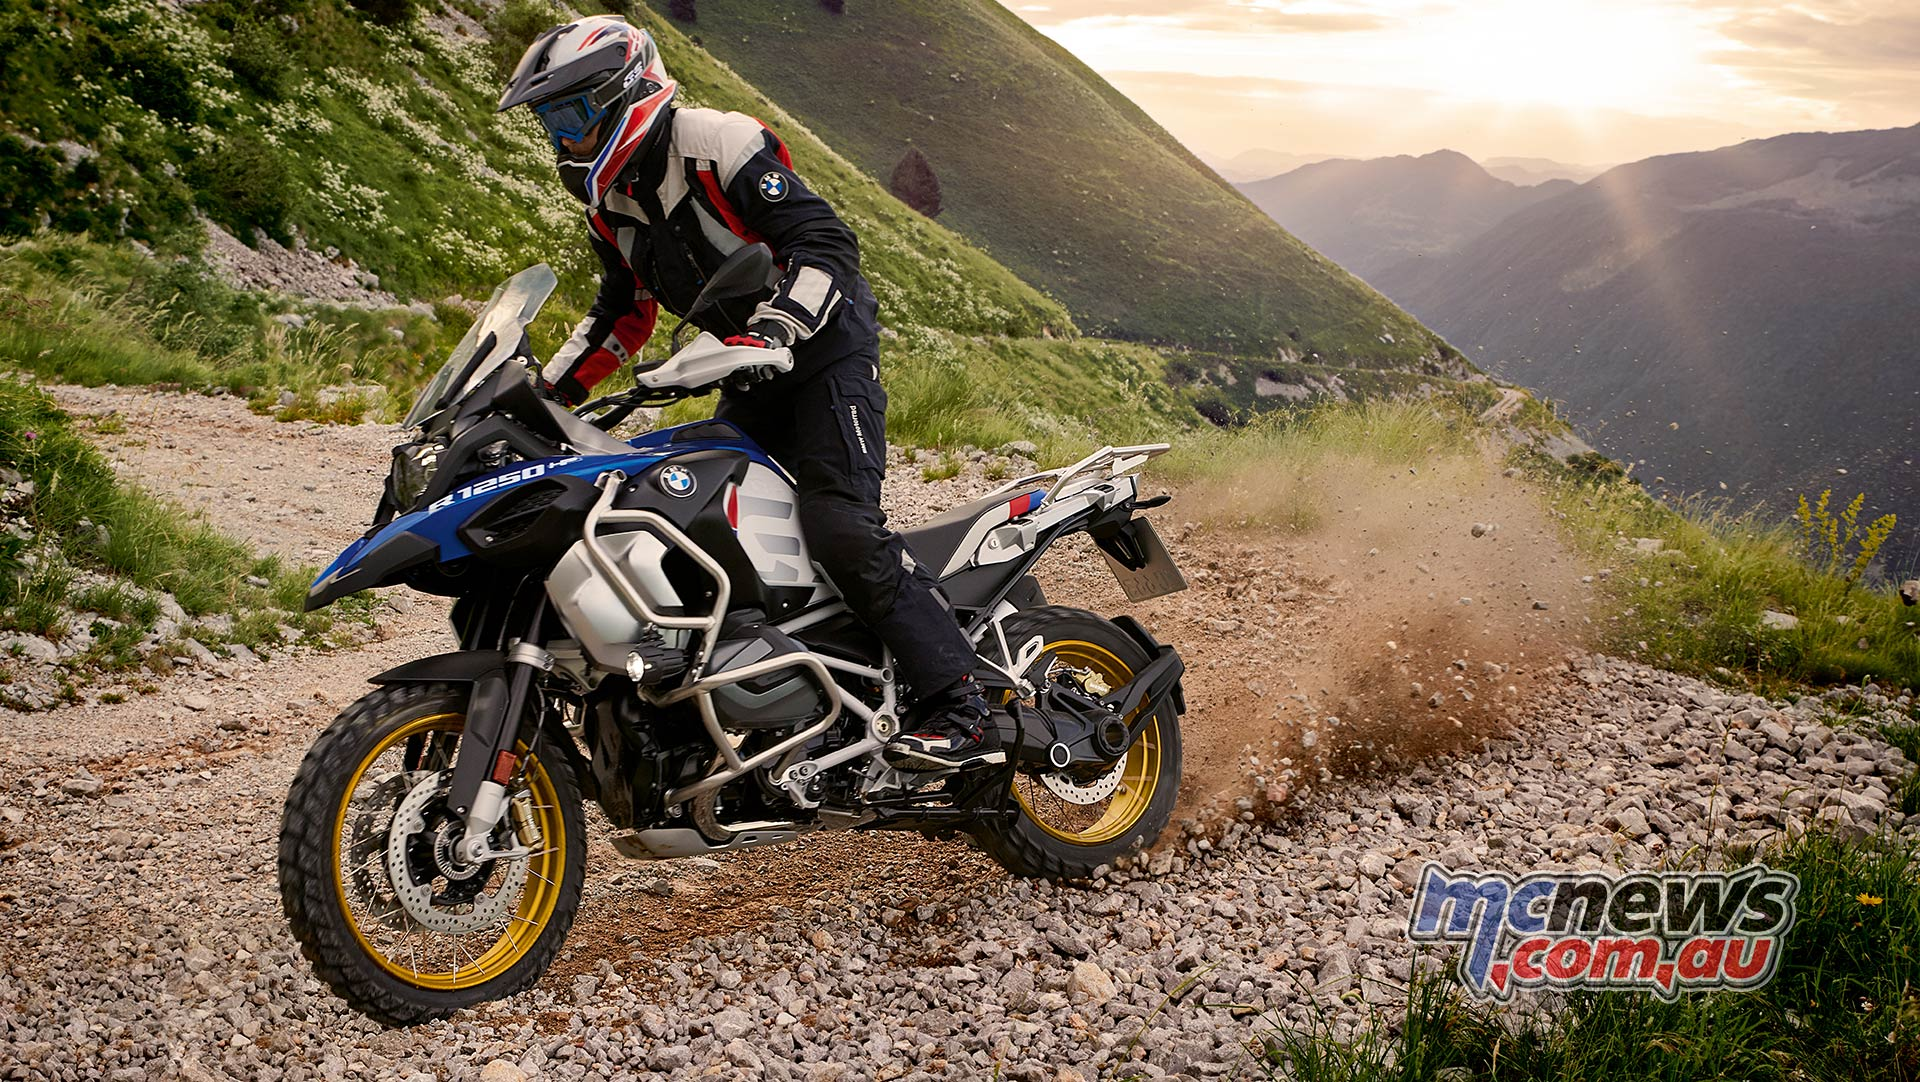 2019 Bmw R 1250 Gs Adventure More Mumbo Sharp Looks Mcnews Com Au